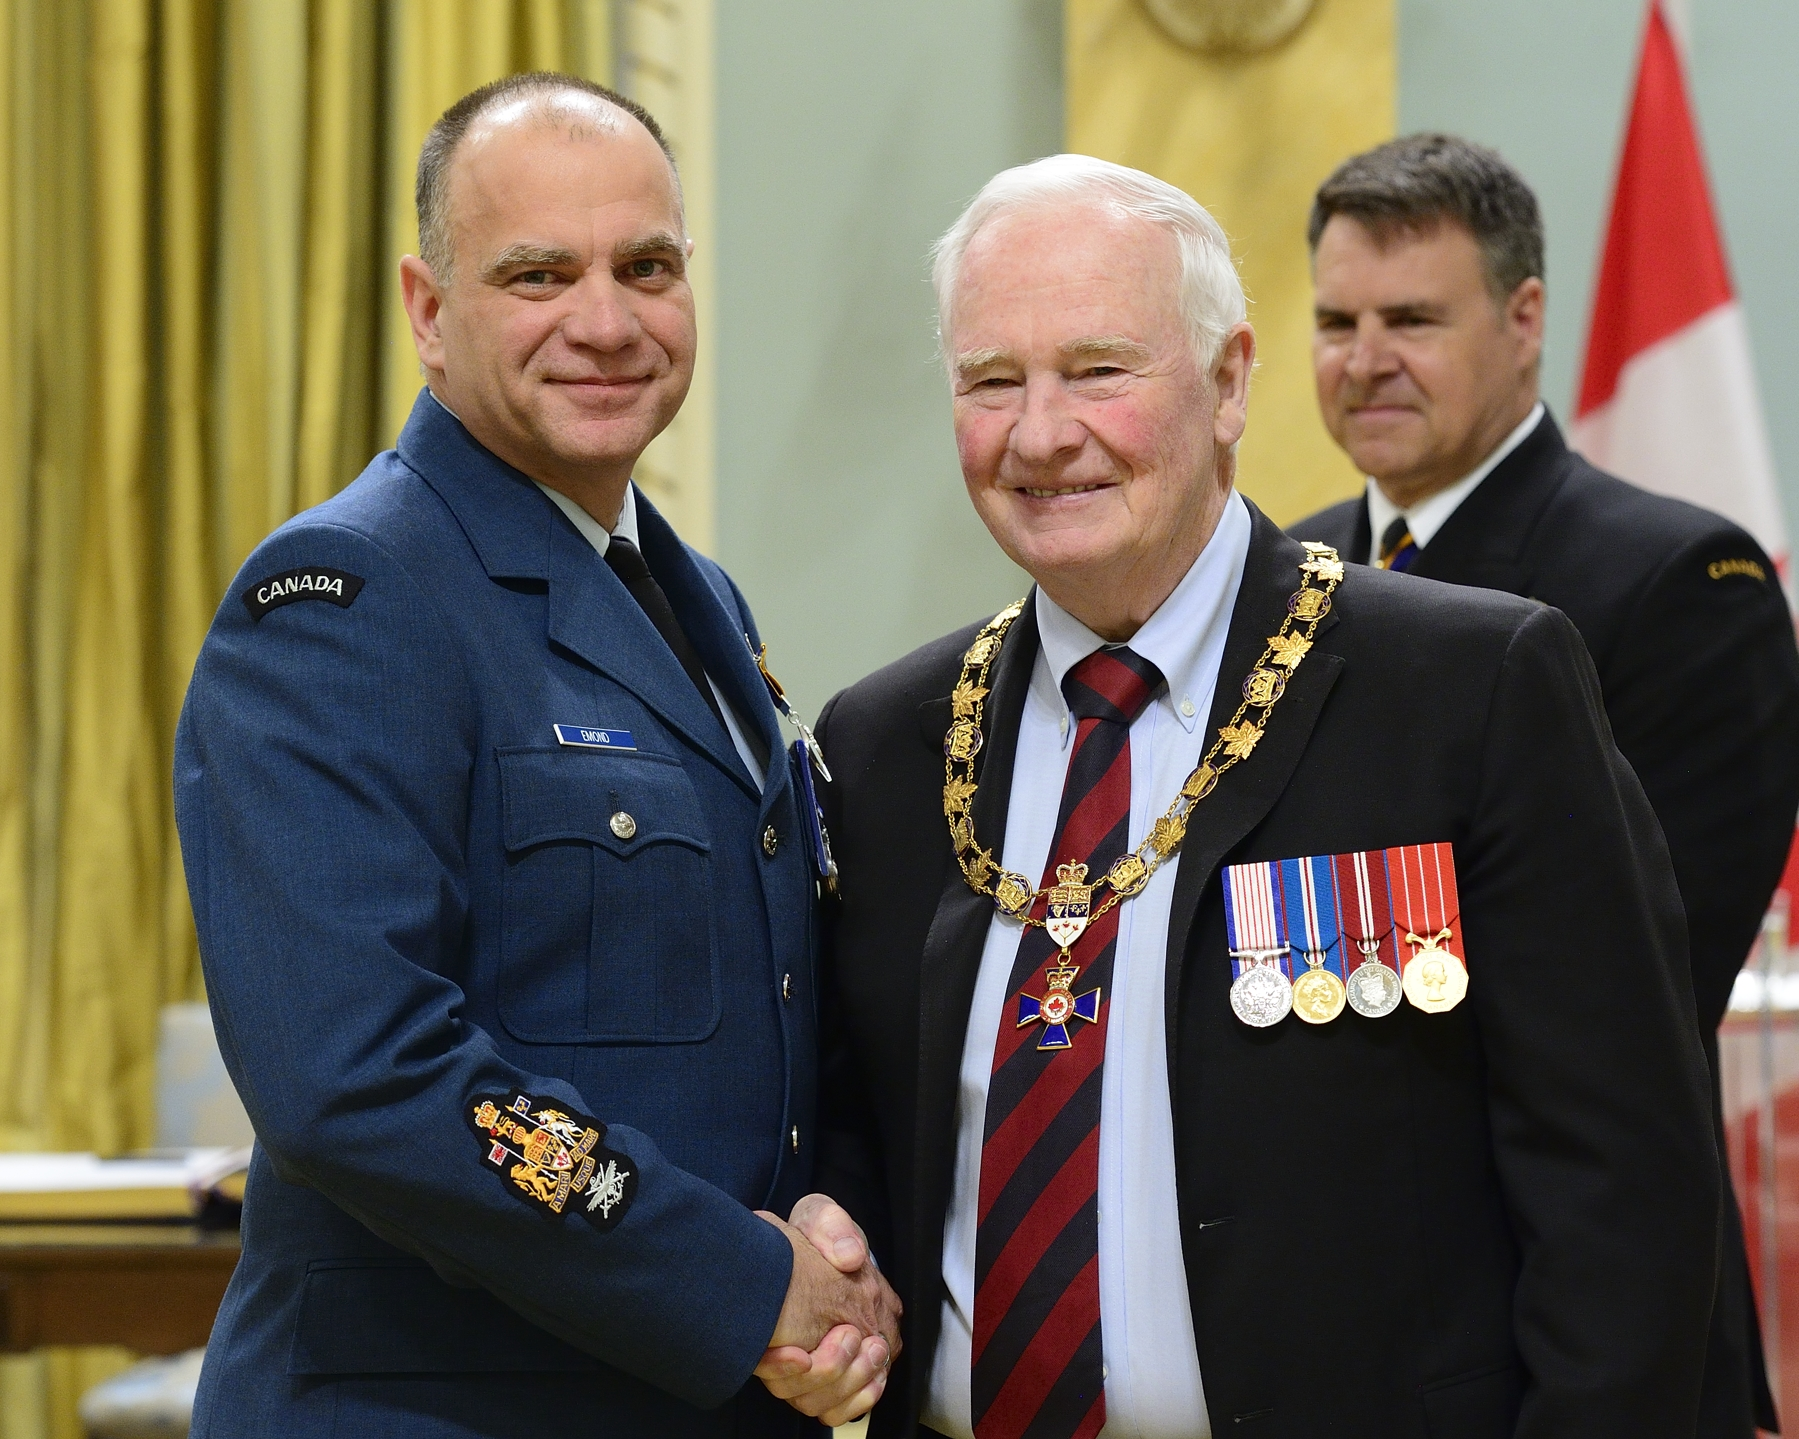 Governor General and Commander-in-Chief of Canada David Johnston presents the Order of Military Merit to Chief Warrant Officer Luc Emond, MMM, MSM, CD, from 14 Wing Headquarters, Greenwood, Nova Scotia. PHOTO: Sergeant Johanie Mahieu, Rideau Hall ©, GG05-2017-0075-040-emond